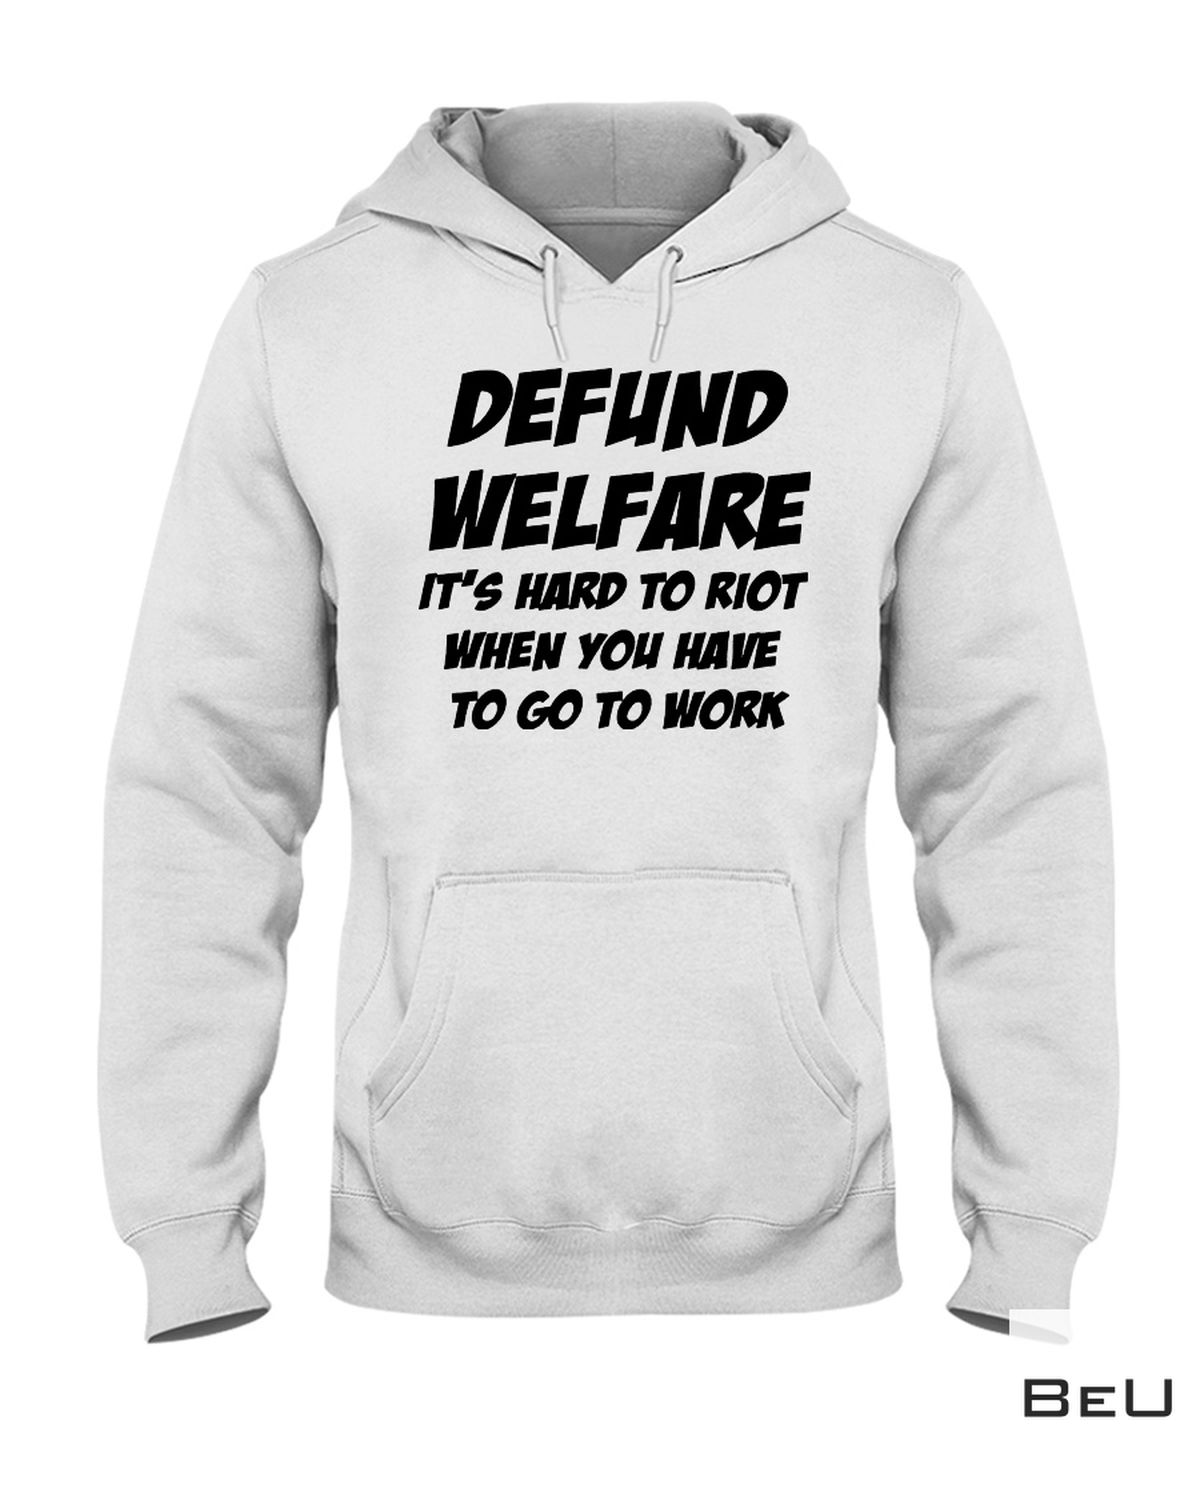 Best Defund Welfare It's Hard To Riot When You Have To Go To Work Shirt